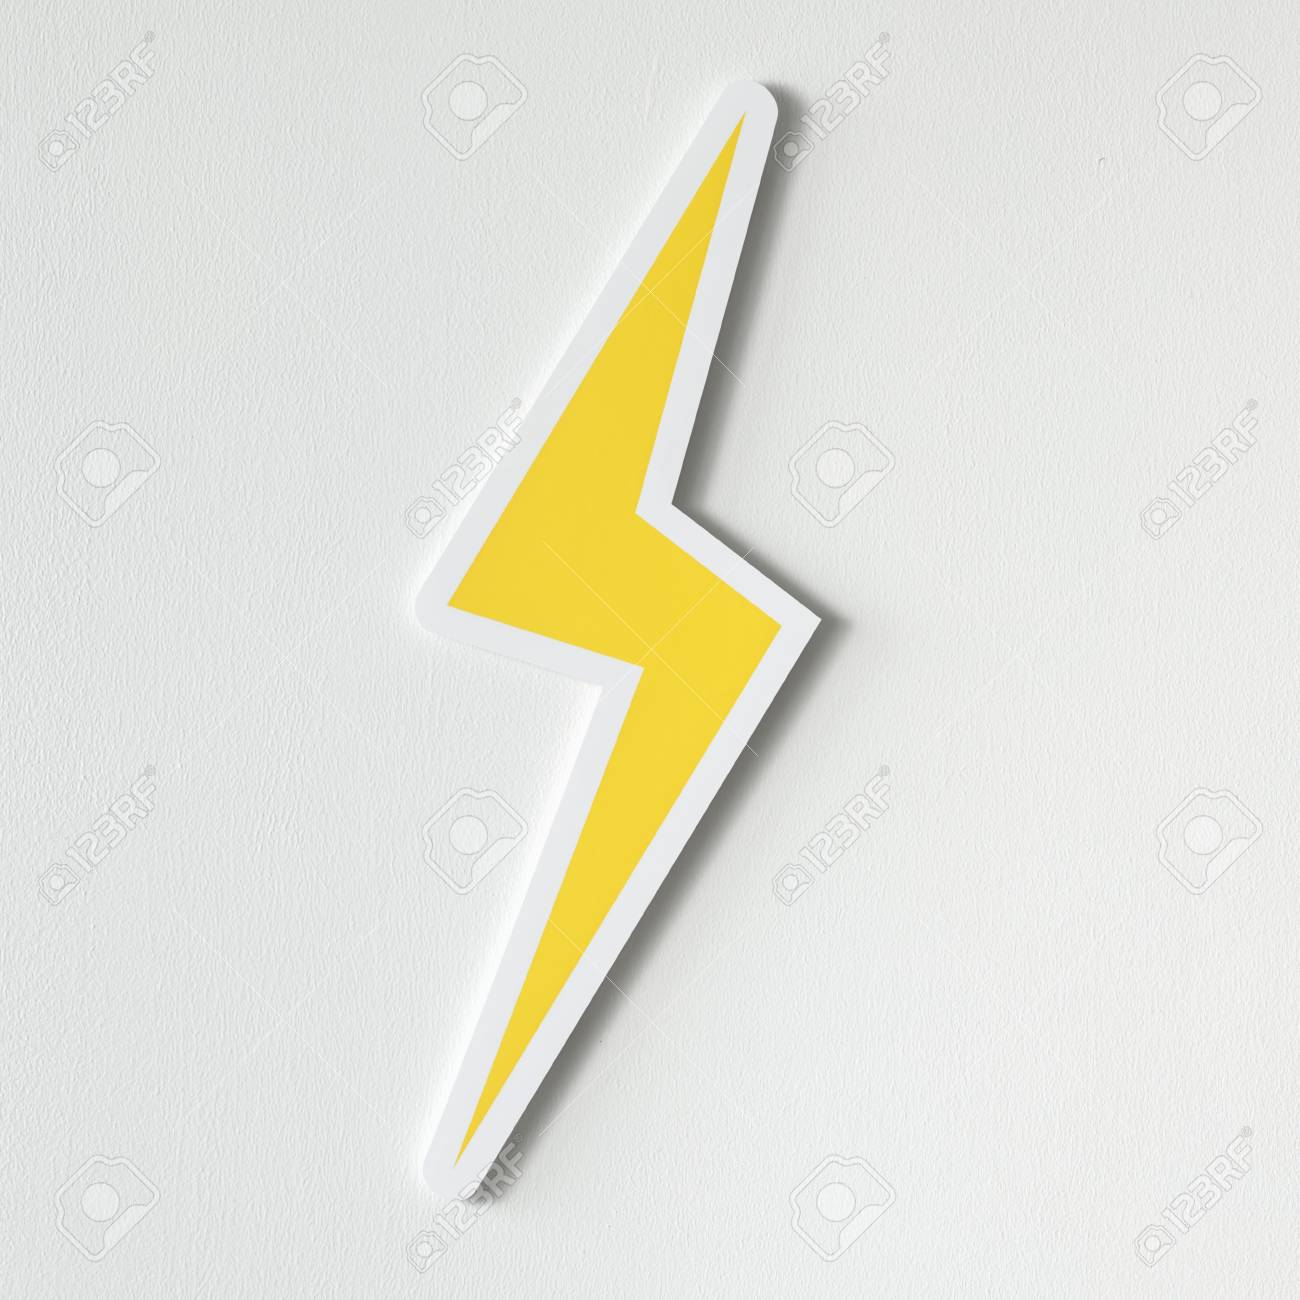 Yellow Electric Lightning Bolt Icon Stock Photo, Picture And ...